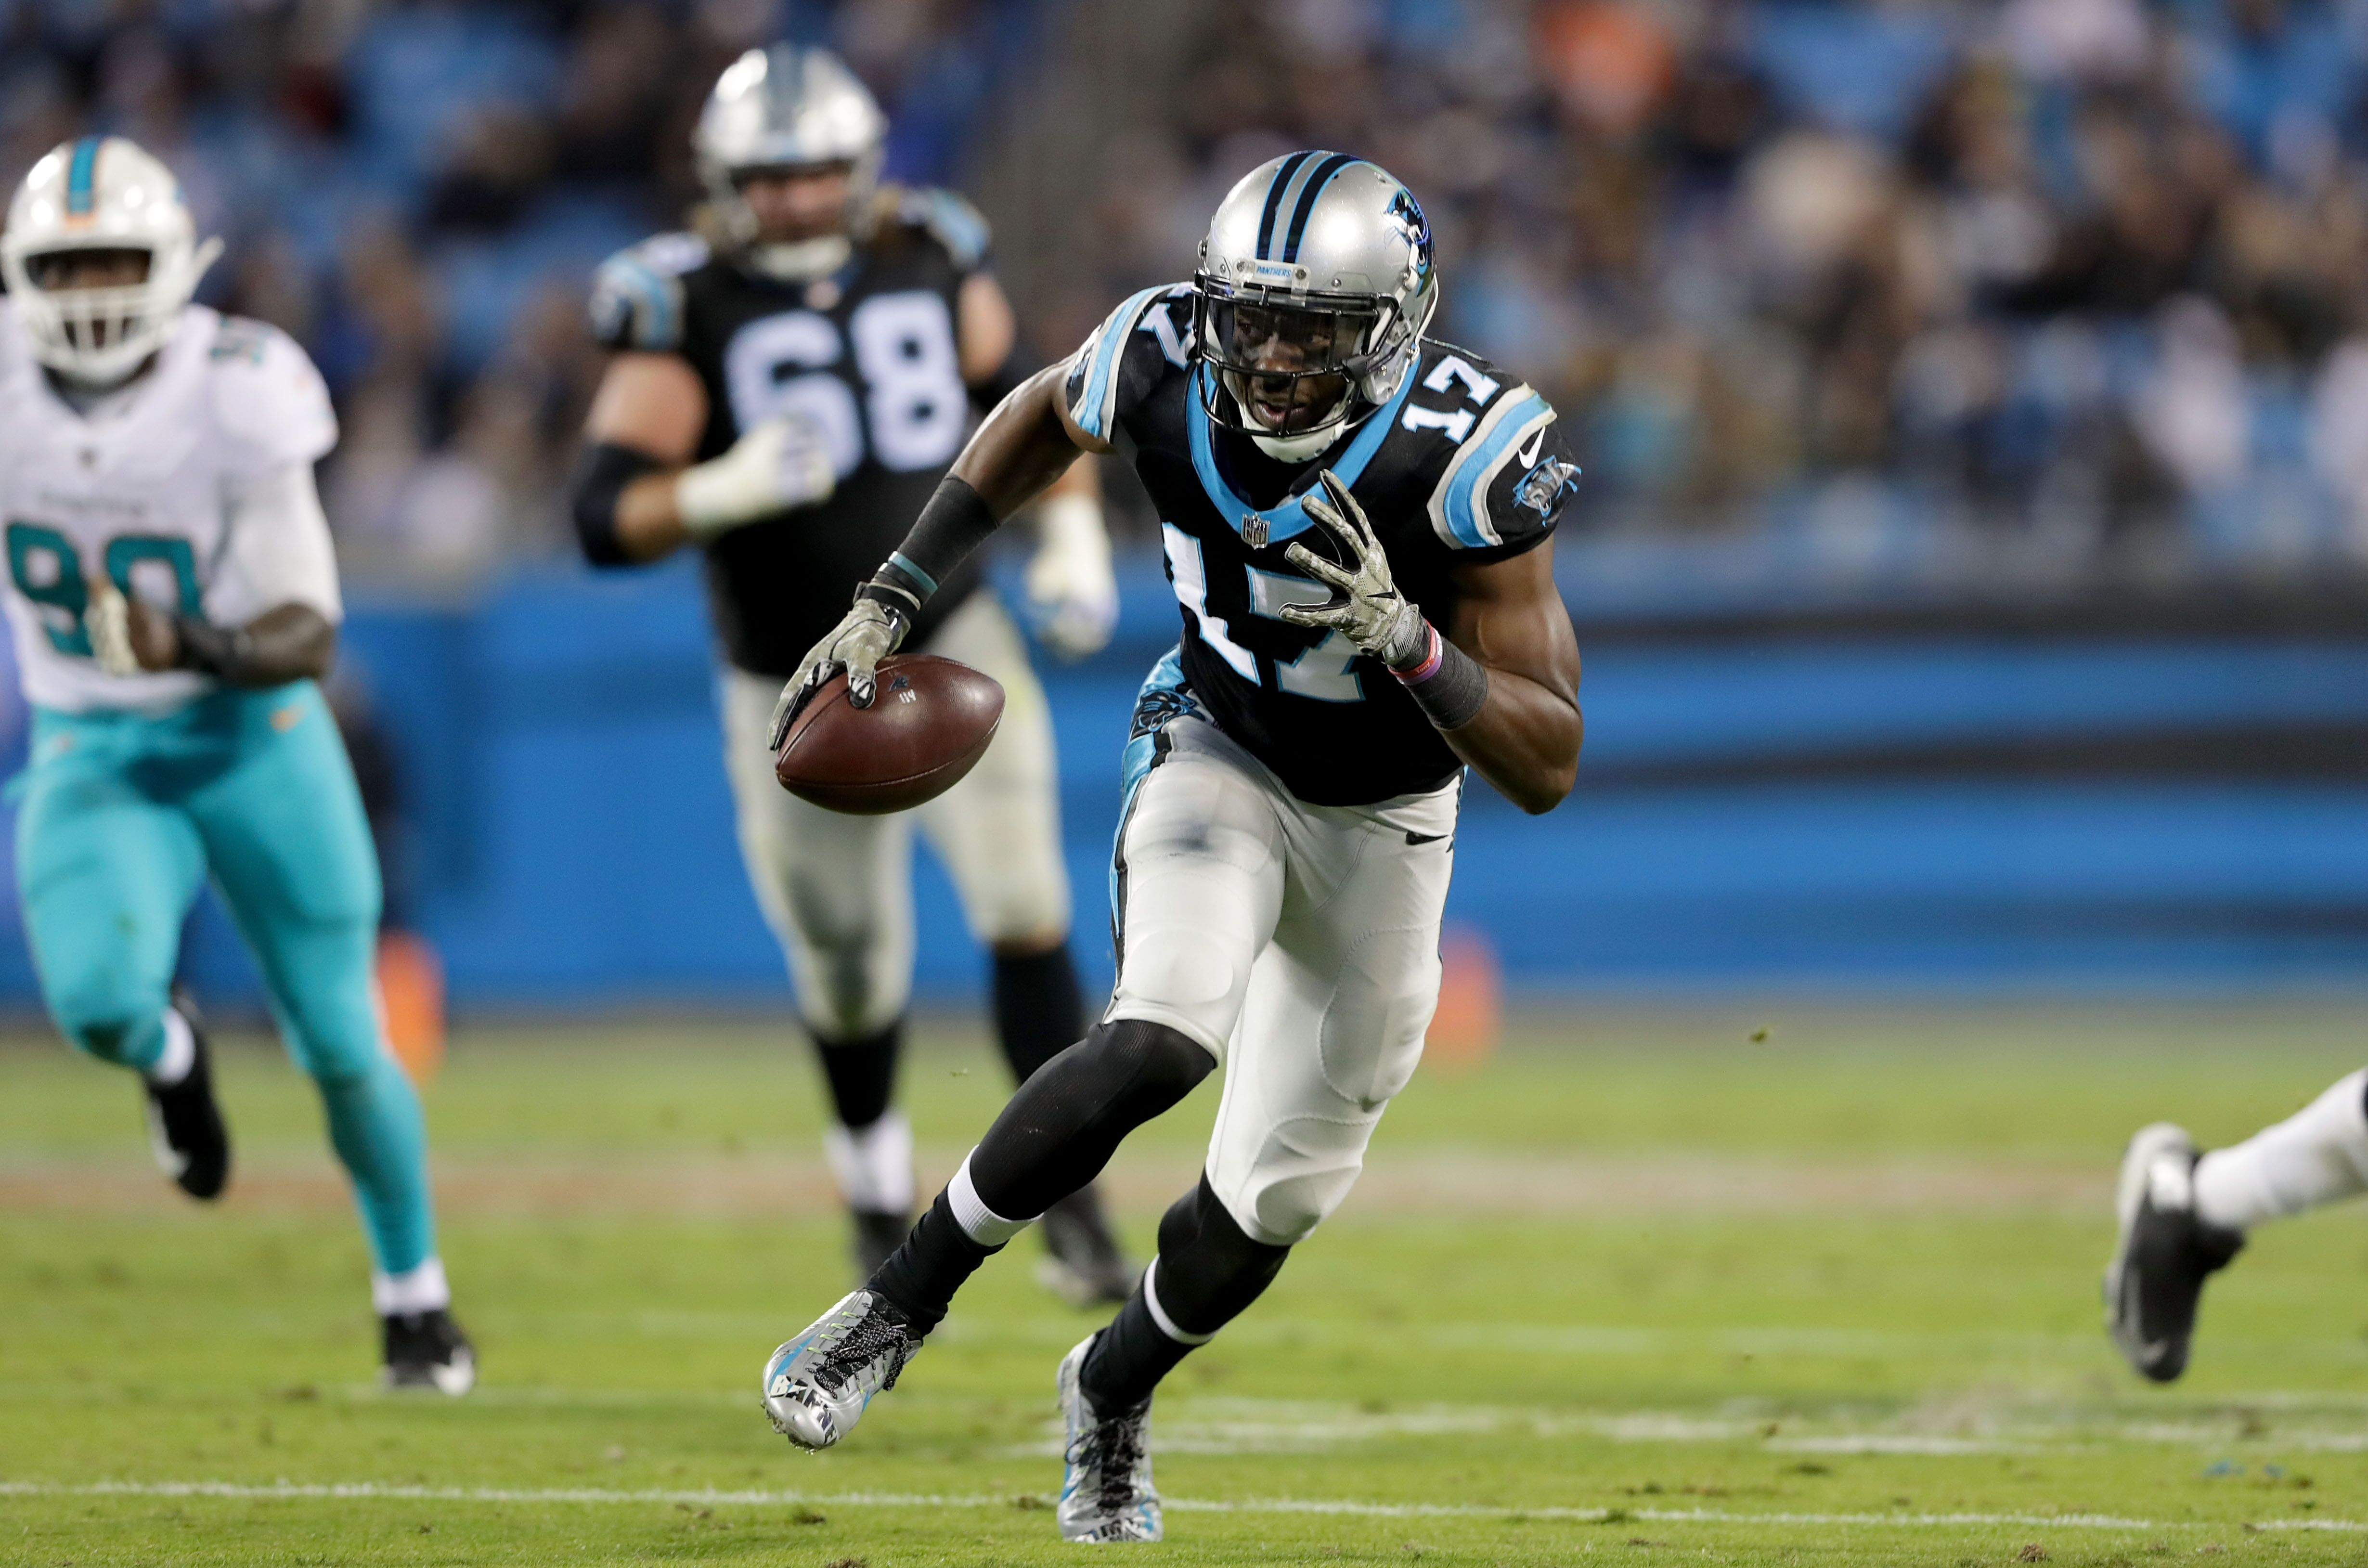 Carolina Panthers At New York Jets Live Stream How To Watch